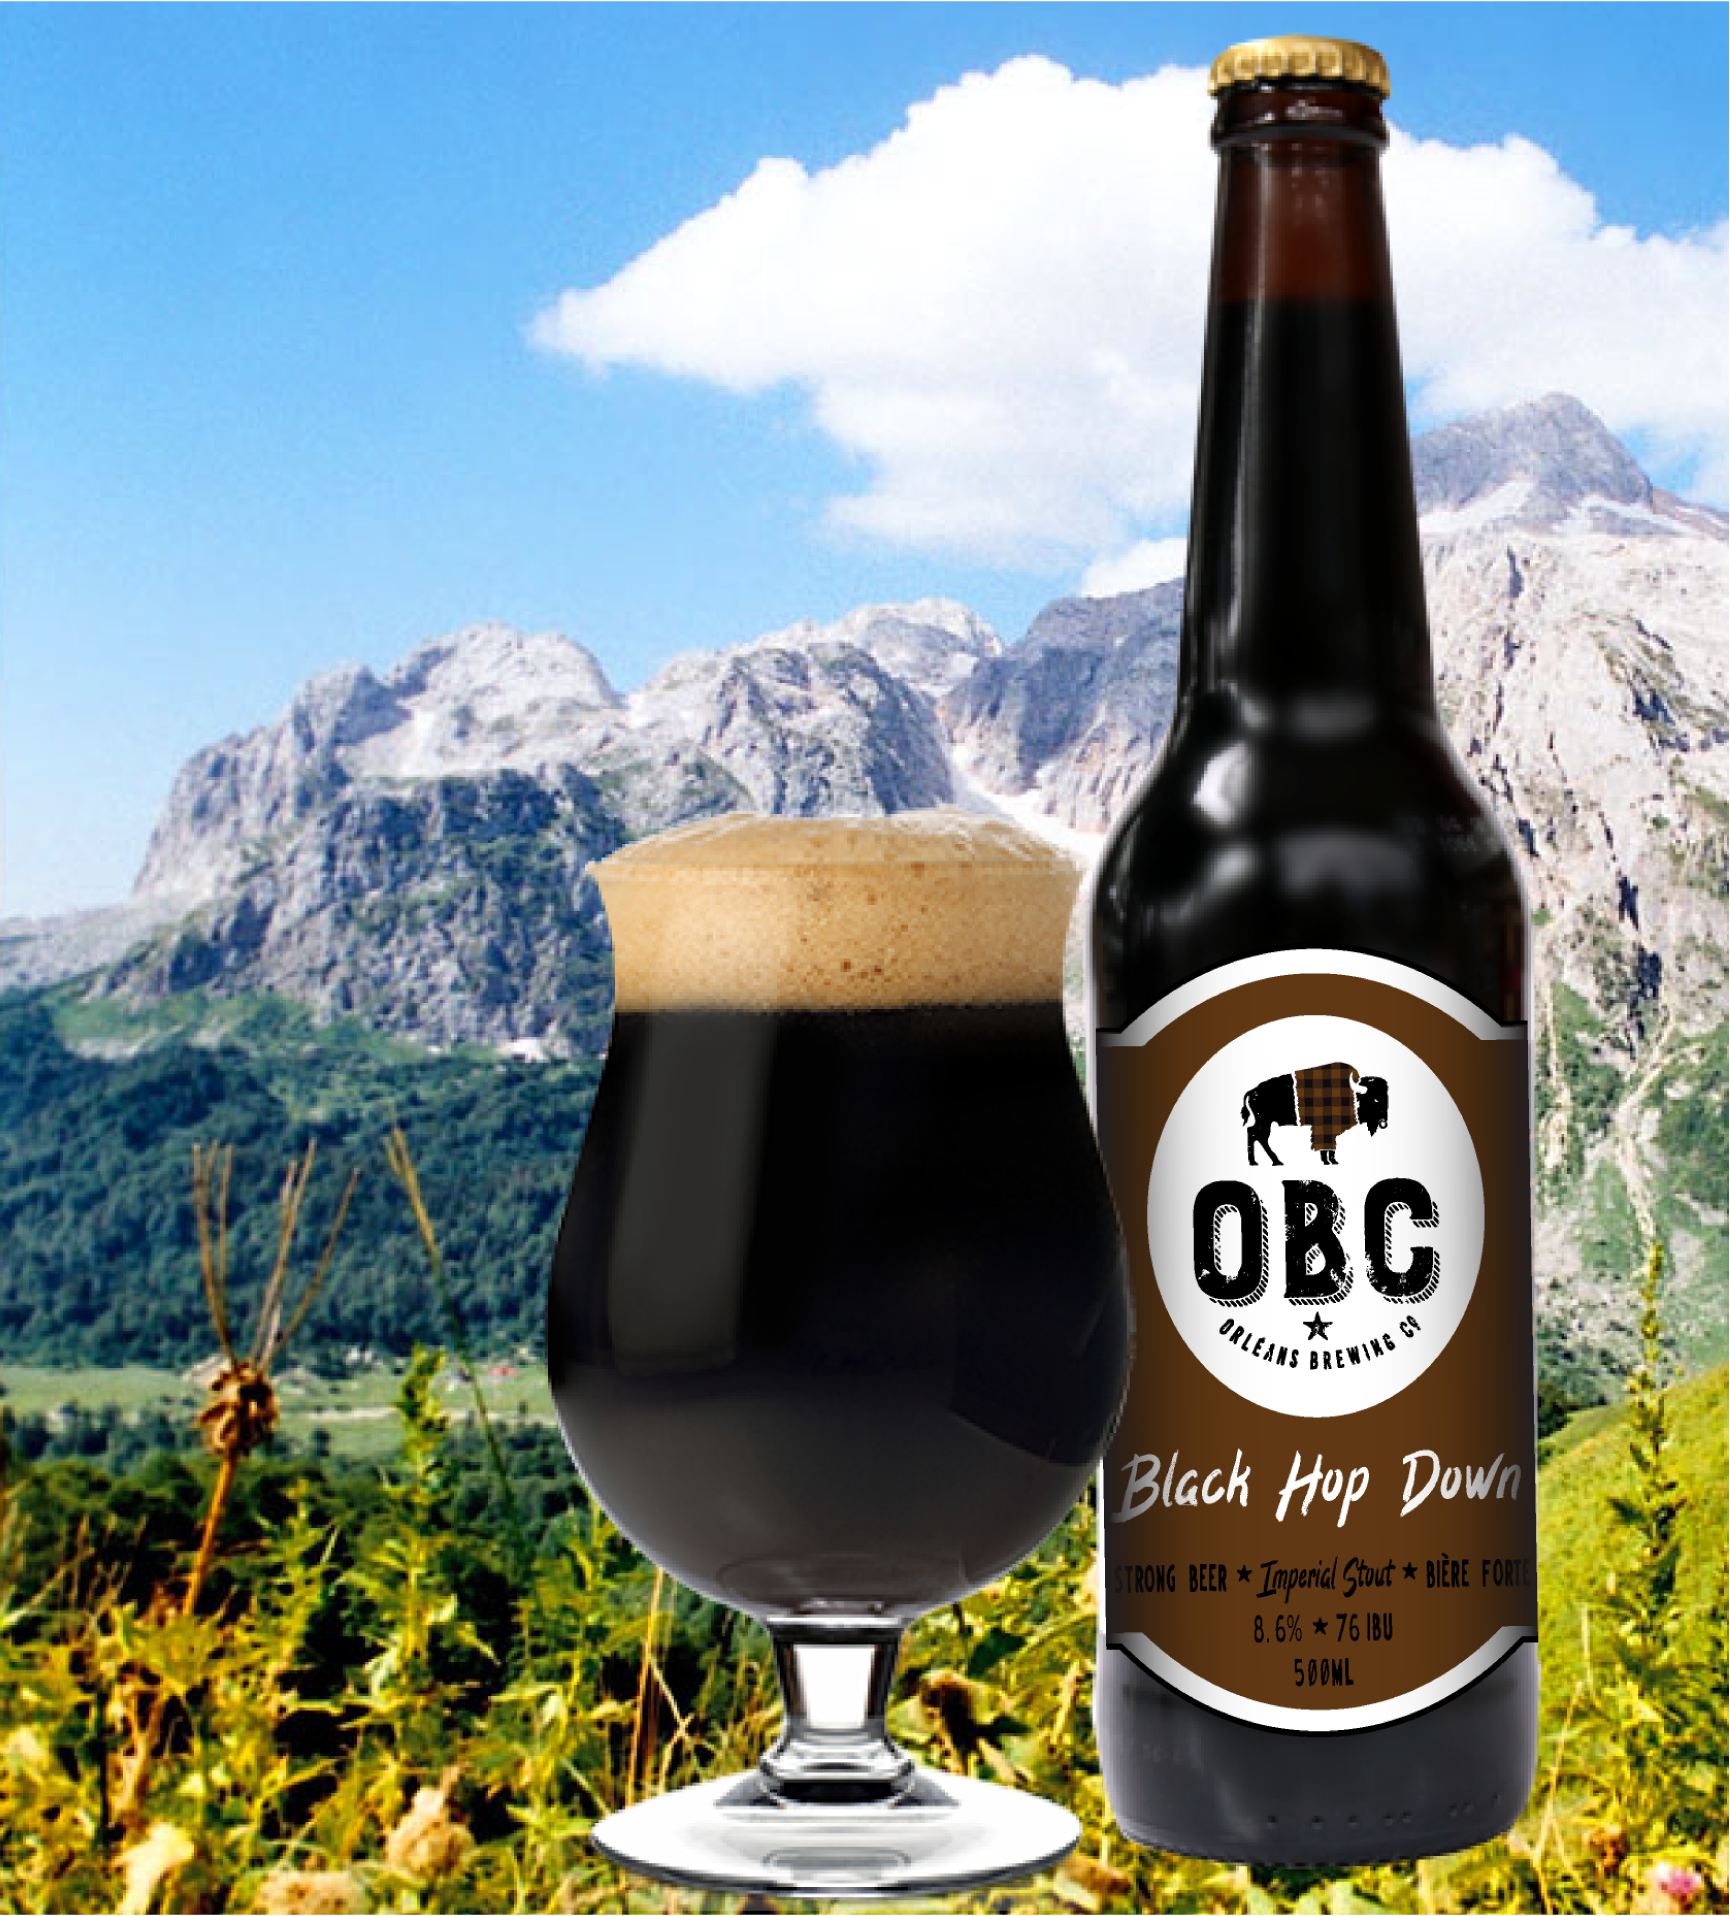 The perfect Imperial Stout for Fall weather.